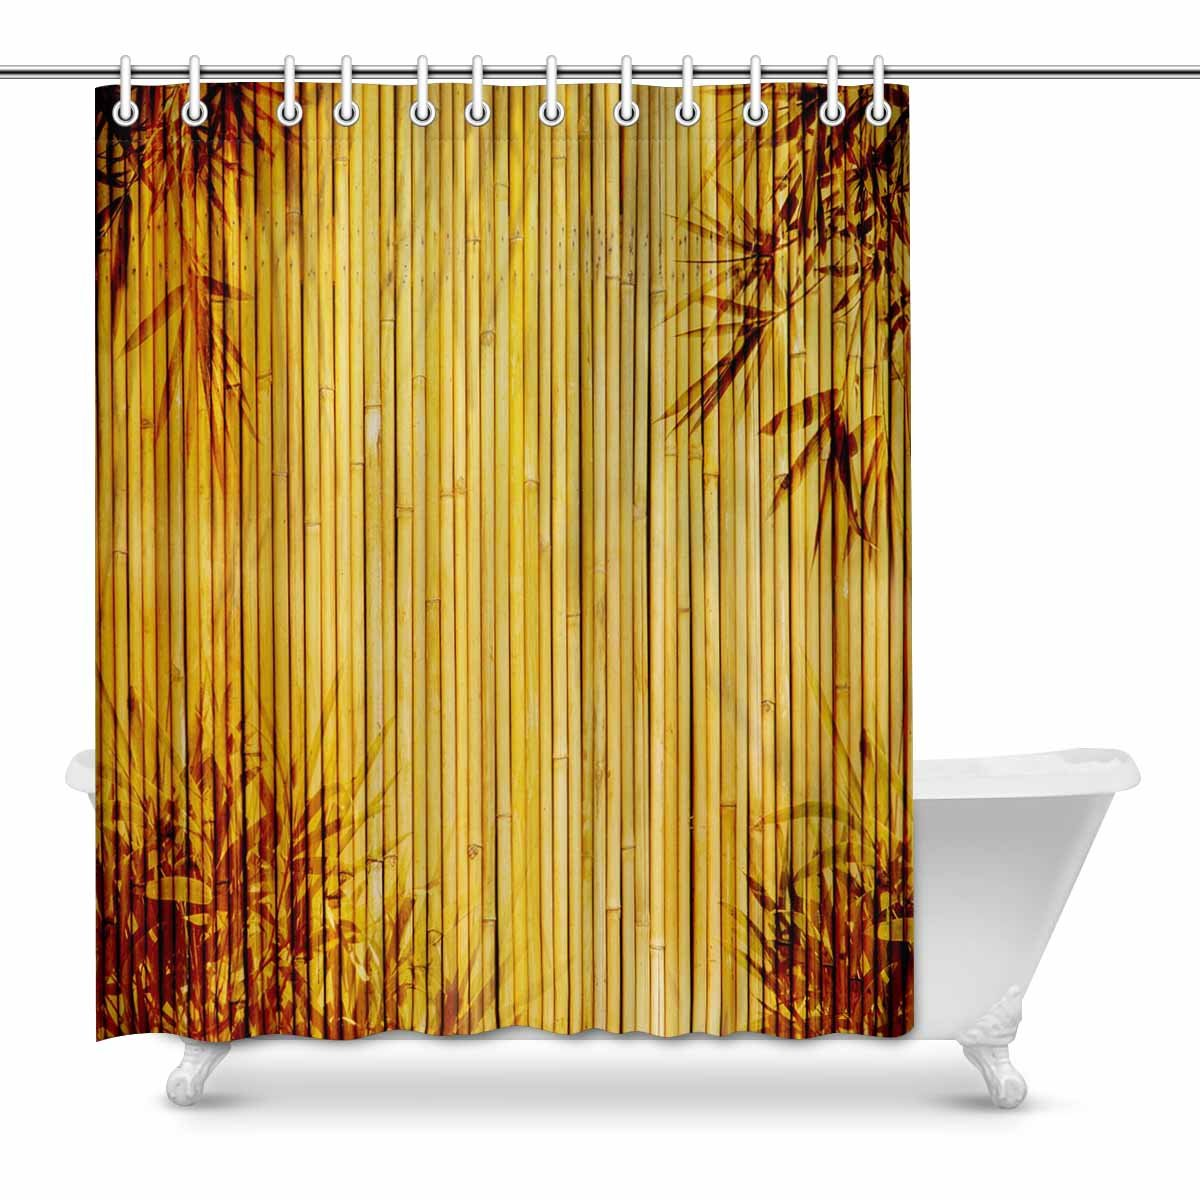 Pop Light Golden Bamboo Country House Image Great For Any Project Frame Of Bamboo Leaves Country House Image Art Decor Bathroom Shower Curtain 60x72 Inch Walmart Canada